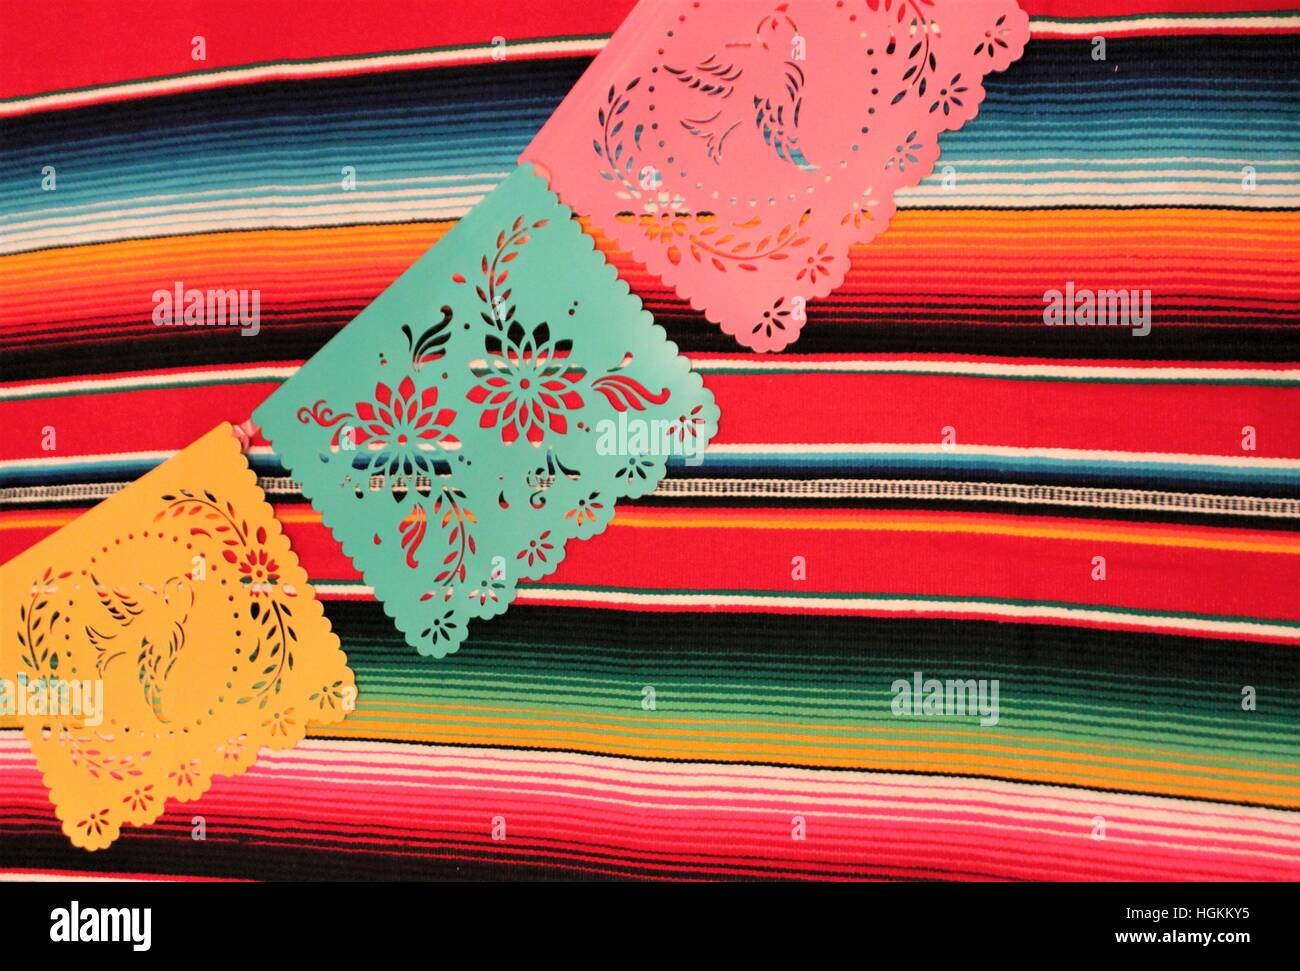 Mexico Poncho Sombrero Skull Background Fiesta Cinco De Mayo Decoration Bunting Flags